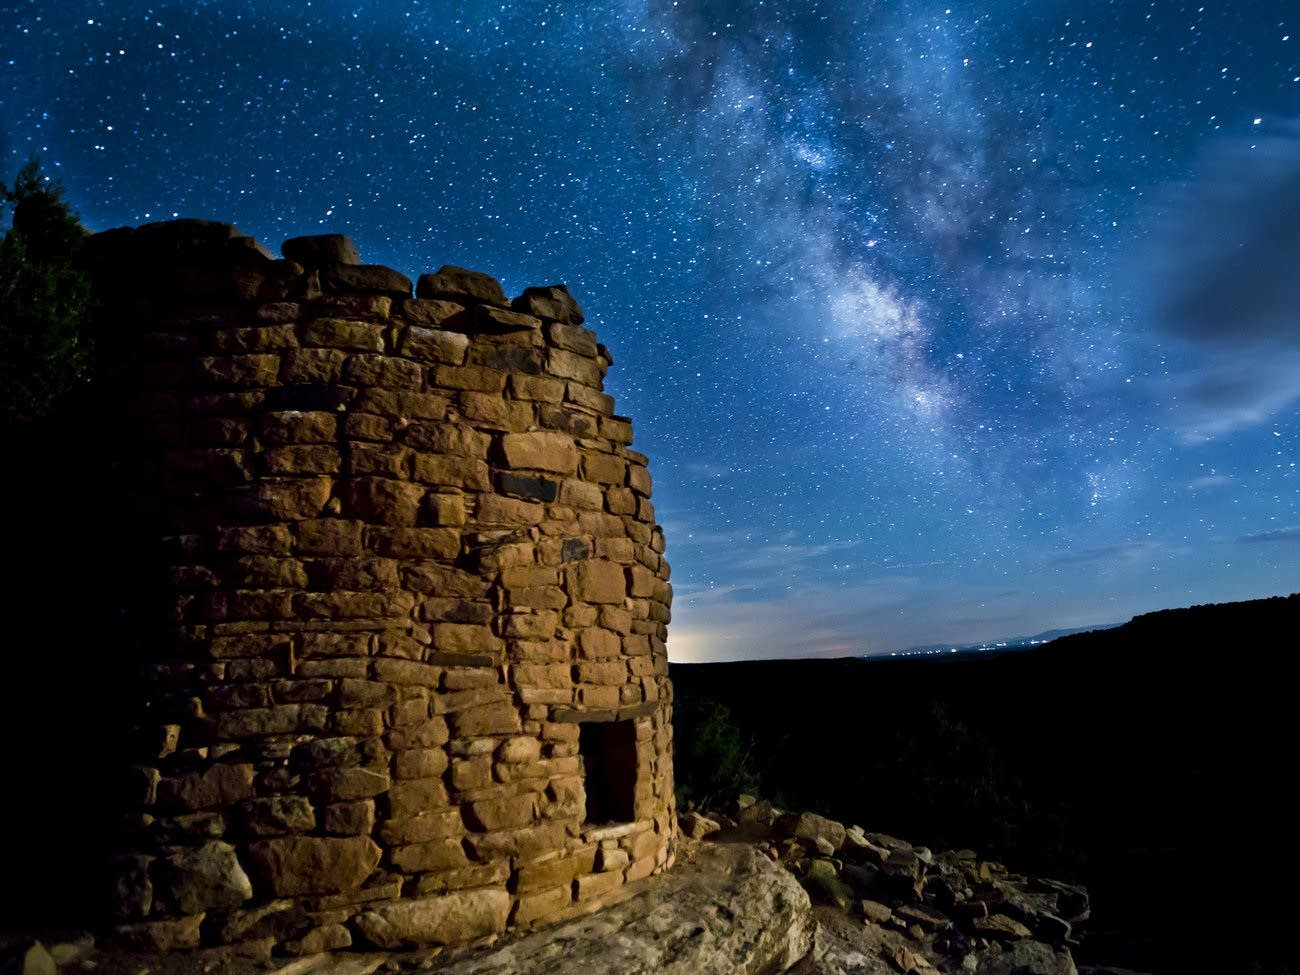 The Canyons of the Ancients National Monument in Colorado